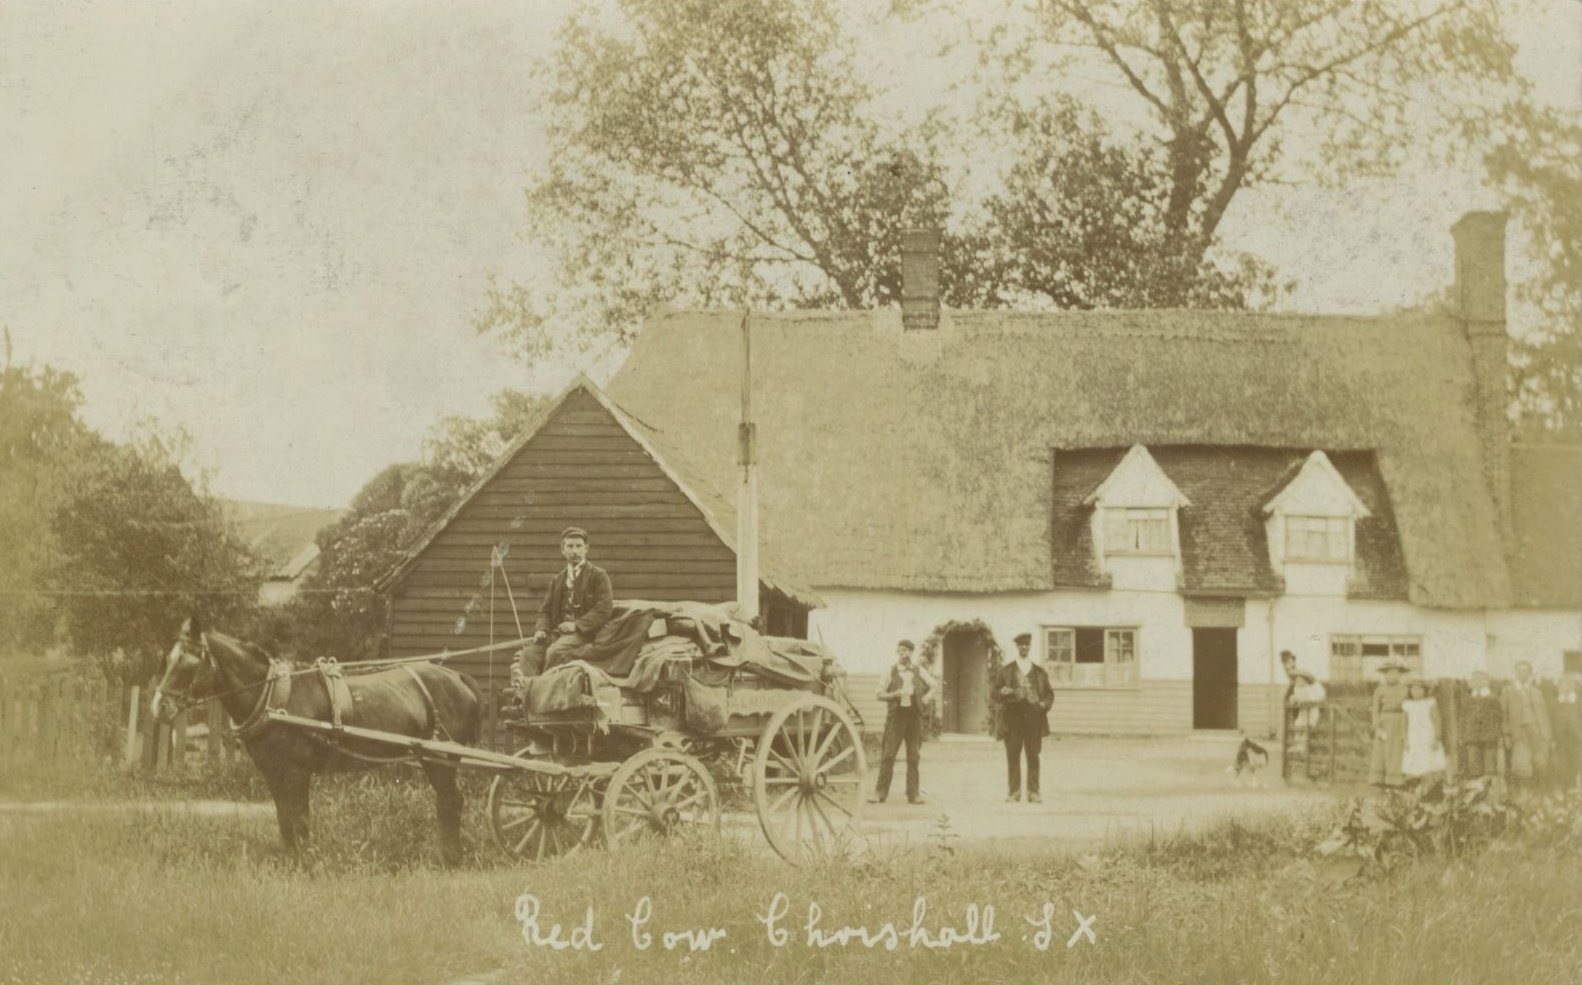 The Red Cow, Chrishall – Known Residents